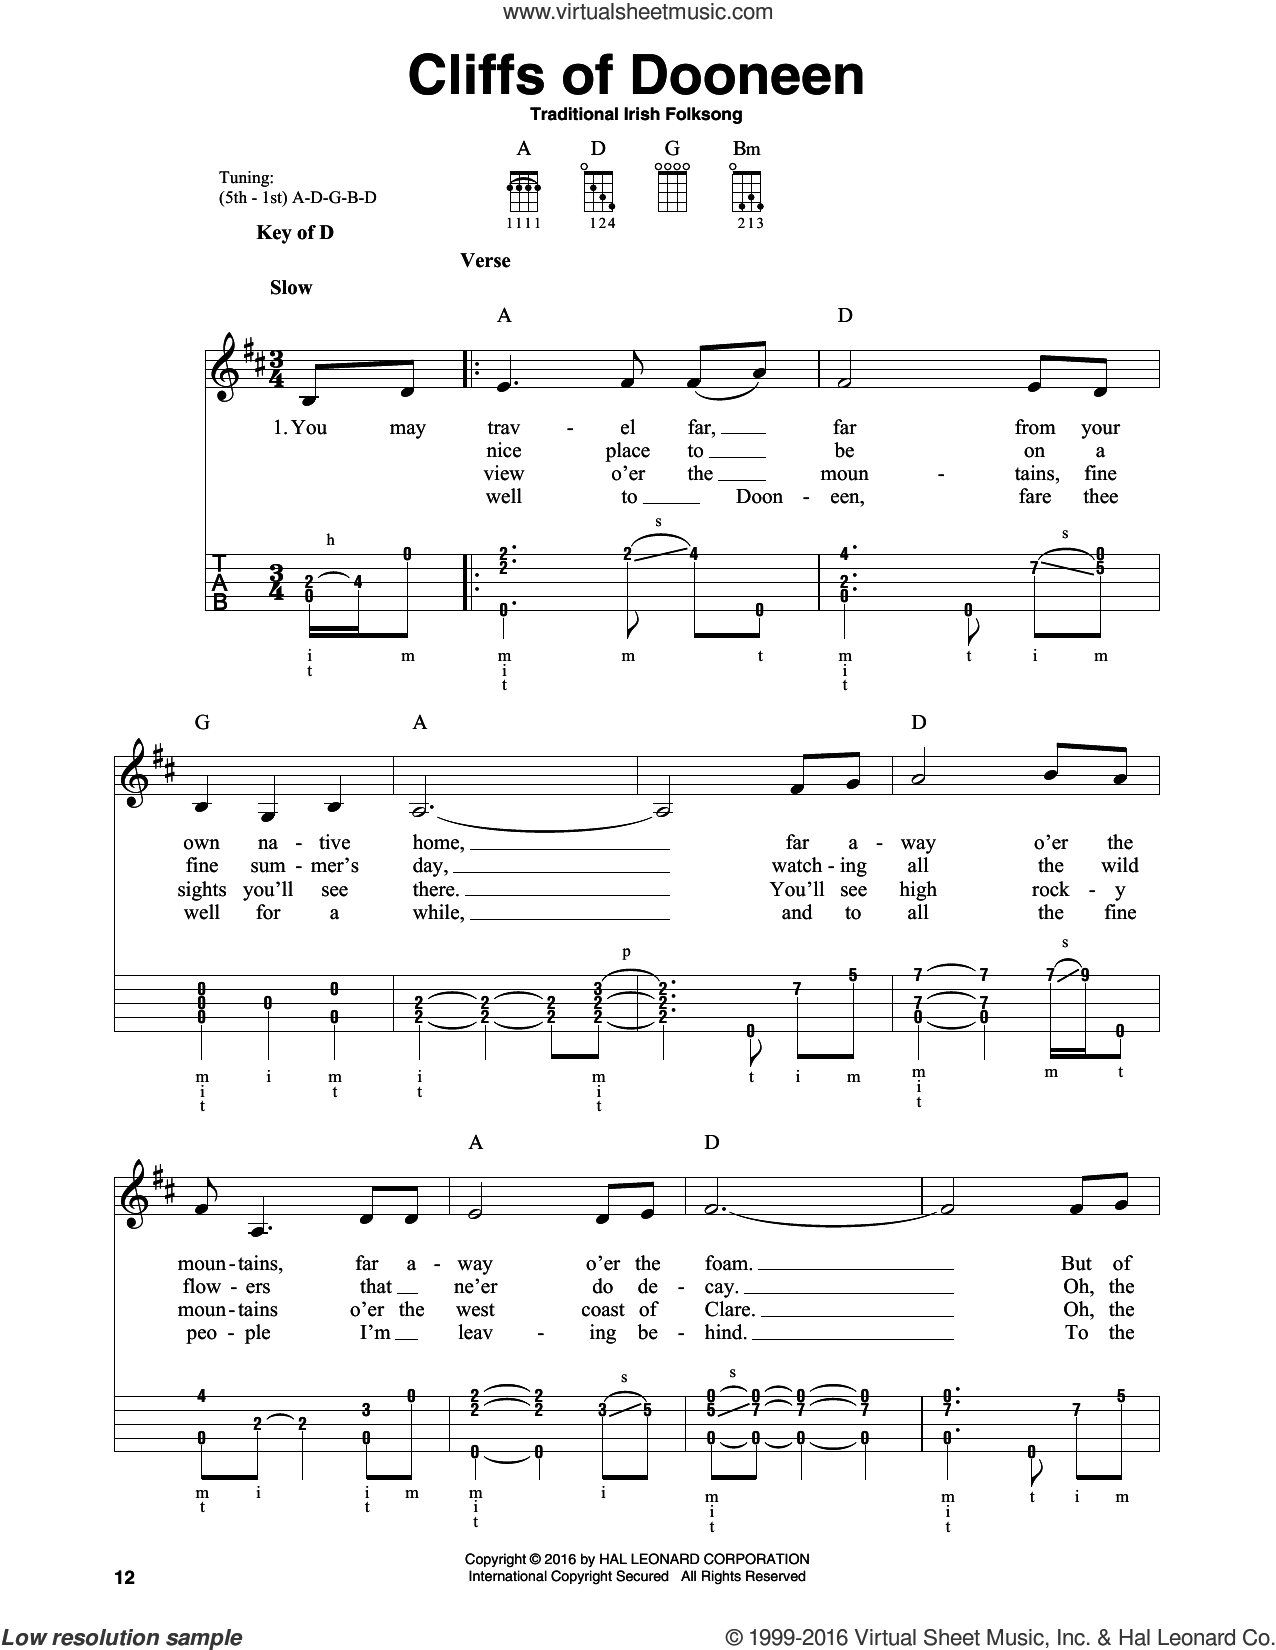 Cliffs Of Doneen sheet music for banjo solo, intermediate skill level